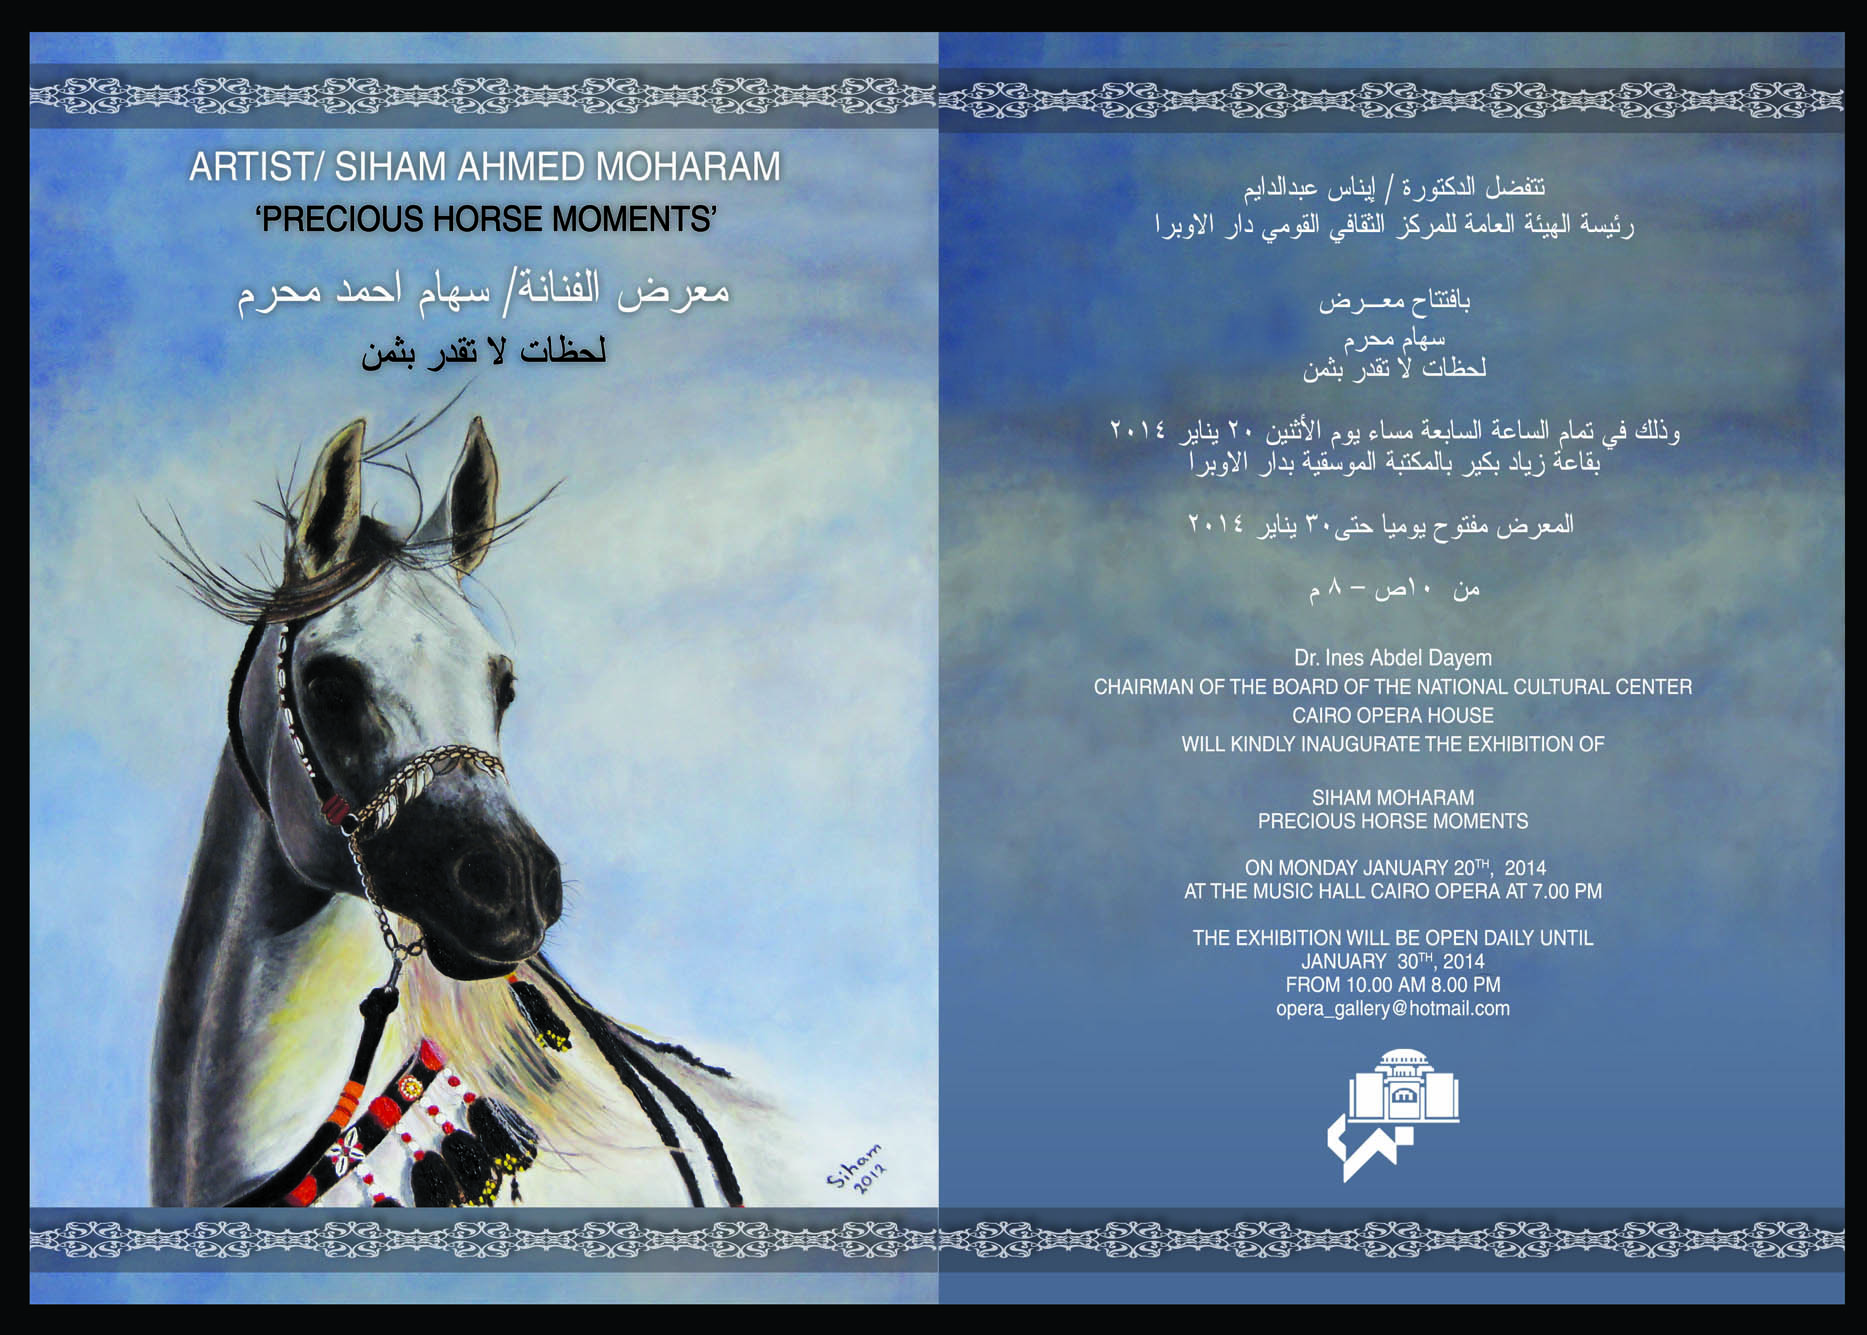 Horse Times Egypt: Equestrian Magazine :News :PRECIOUS HORSE MOMENTS - WOOD BURNING EXHIBITION CAIRO OPERA HOUSE